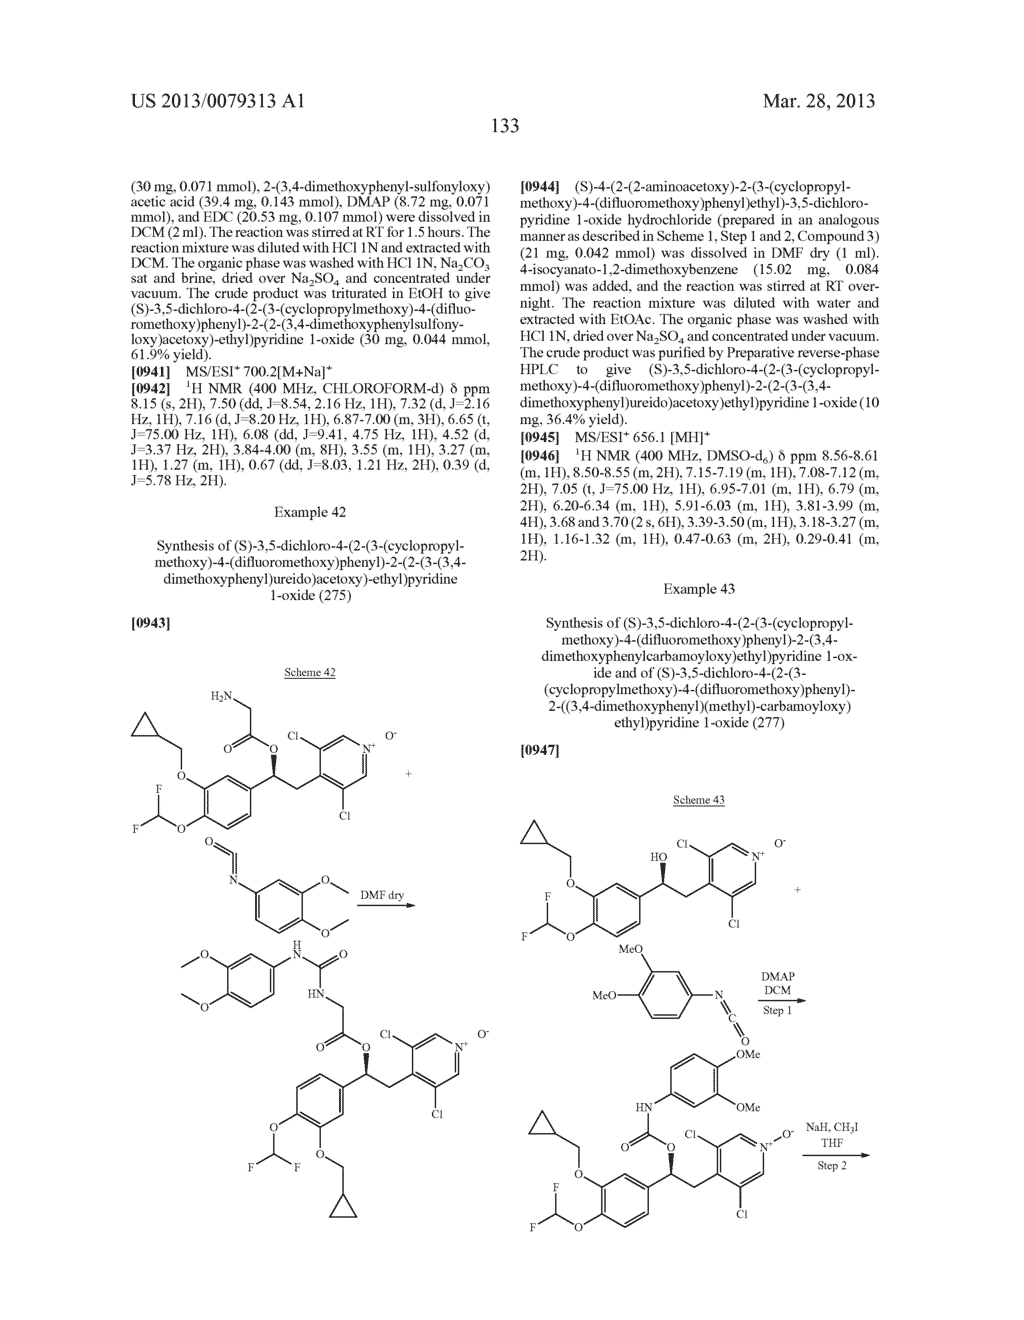 DERIVATIVES OF 1-PHENYL-2-PYRIDINYL ALKYL ALCOHOLS AS PHOSPHODIESTERASE     INHIBITORS - diagram, schematic, and image 134